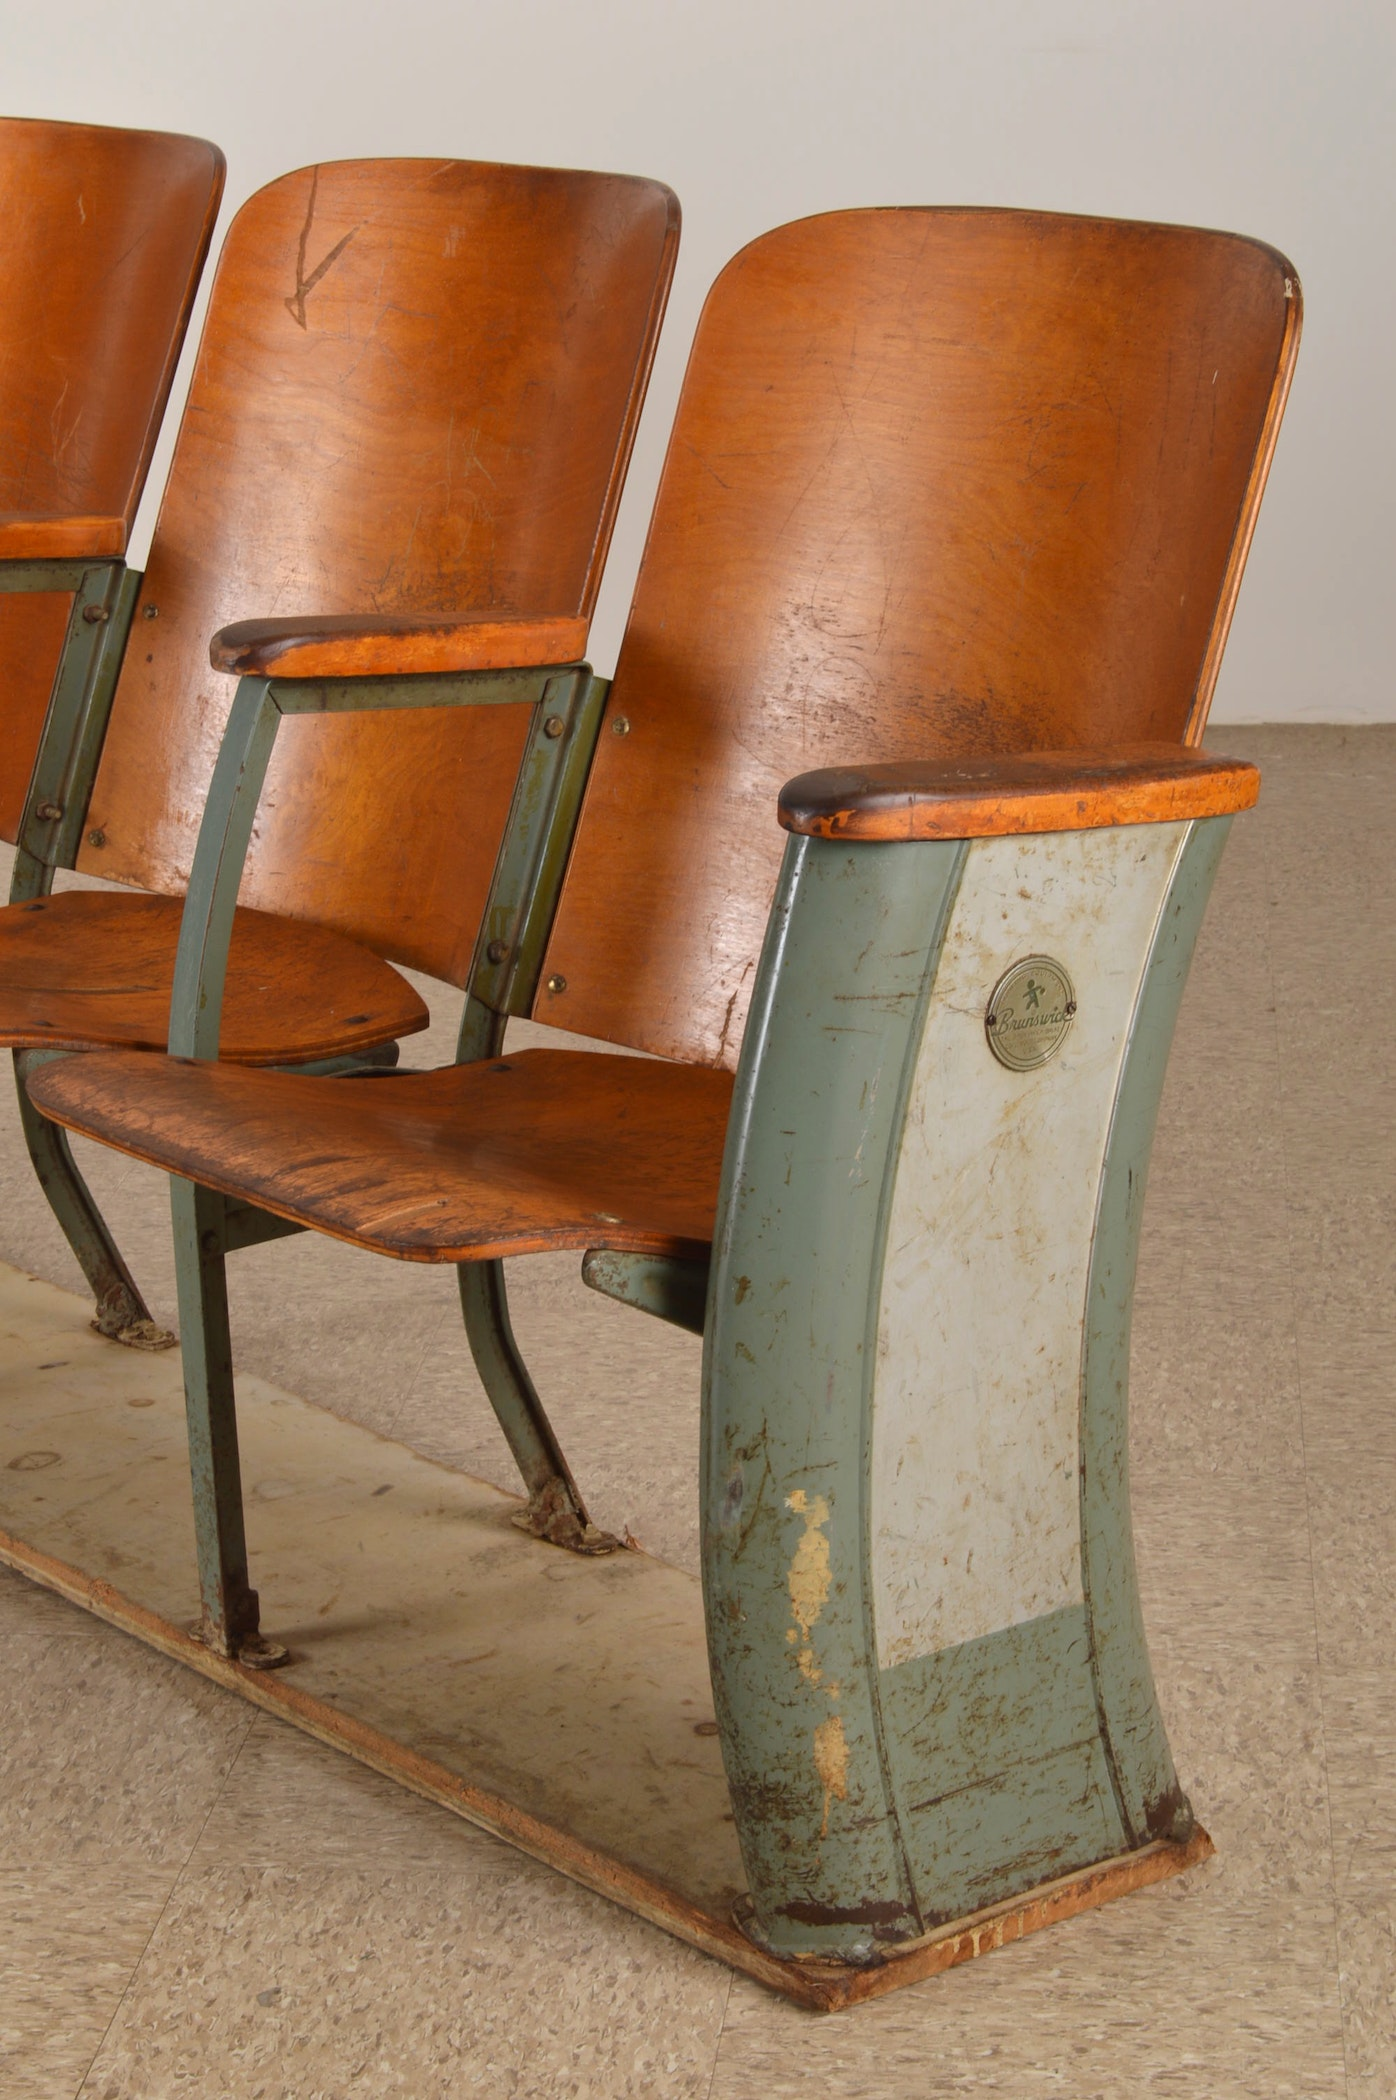 Retro Brunswick Balke Bowling Alley Connected Chairs Ebth